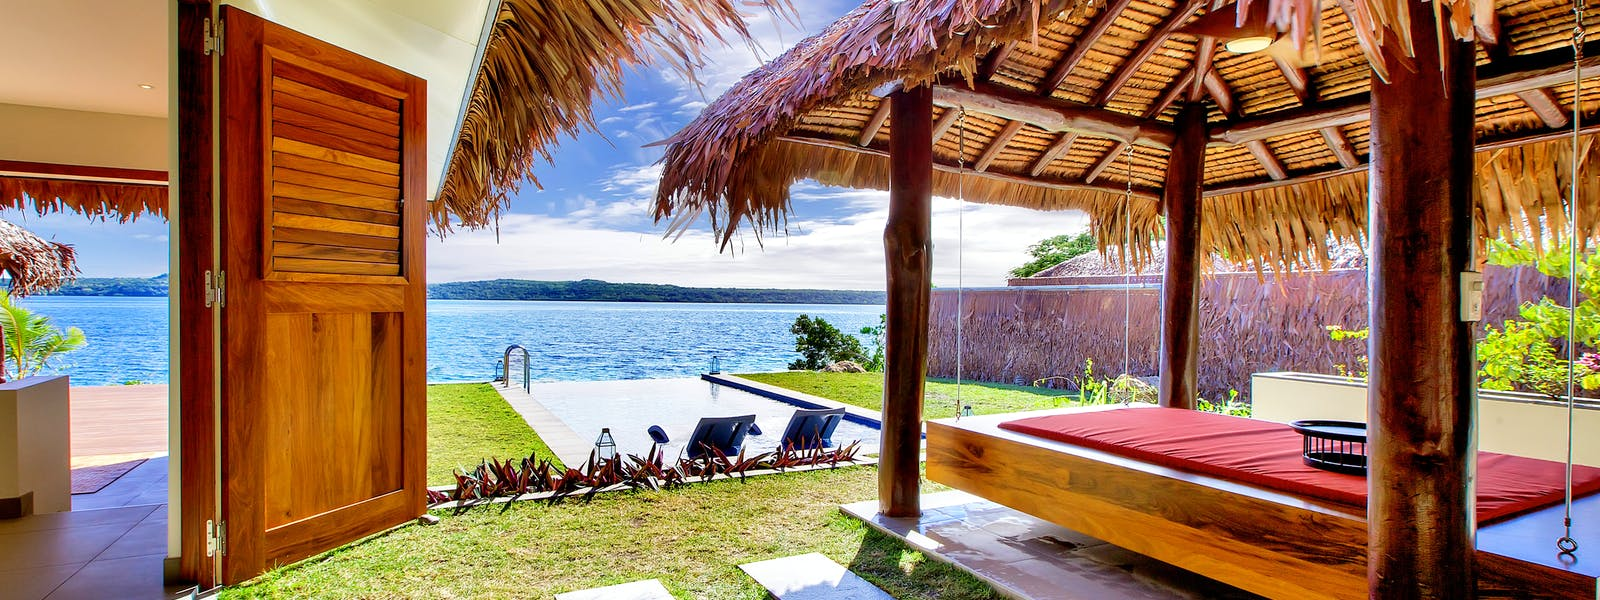 Deluxe Waterfront Villa The Havannah, Vanuatu. Award winning Luxury resort  for couples,  romance, weddings and Honeymoon.